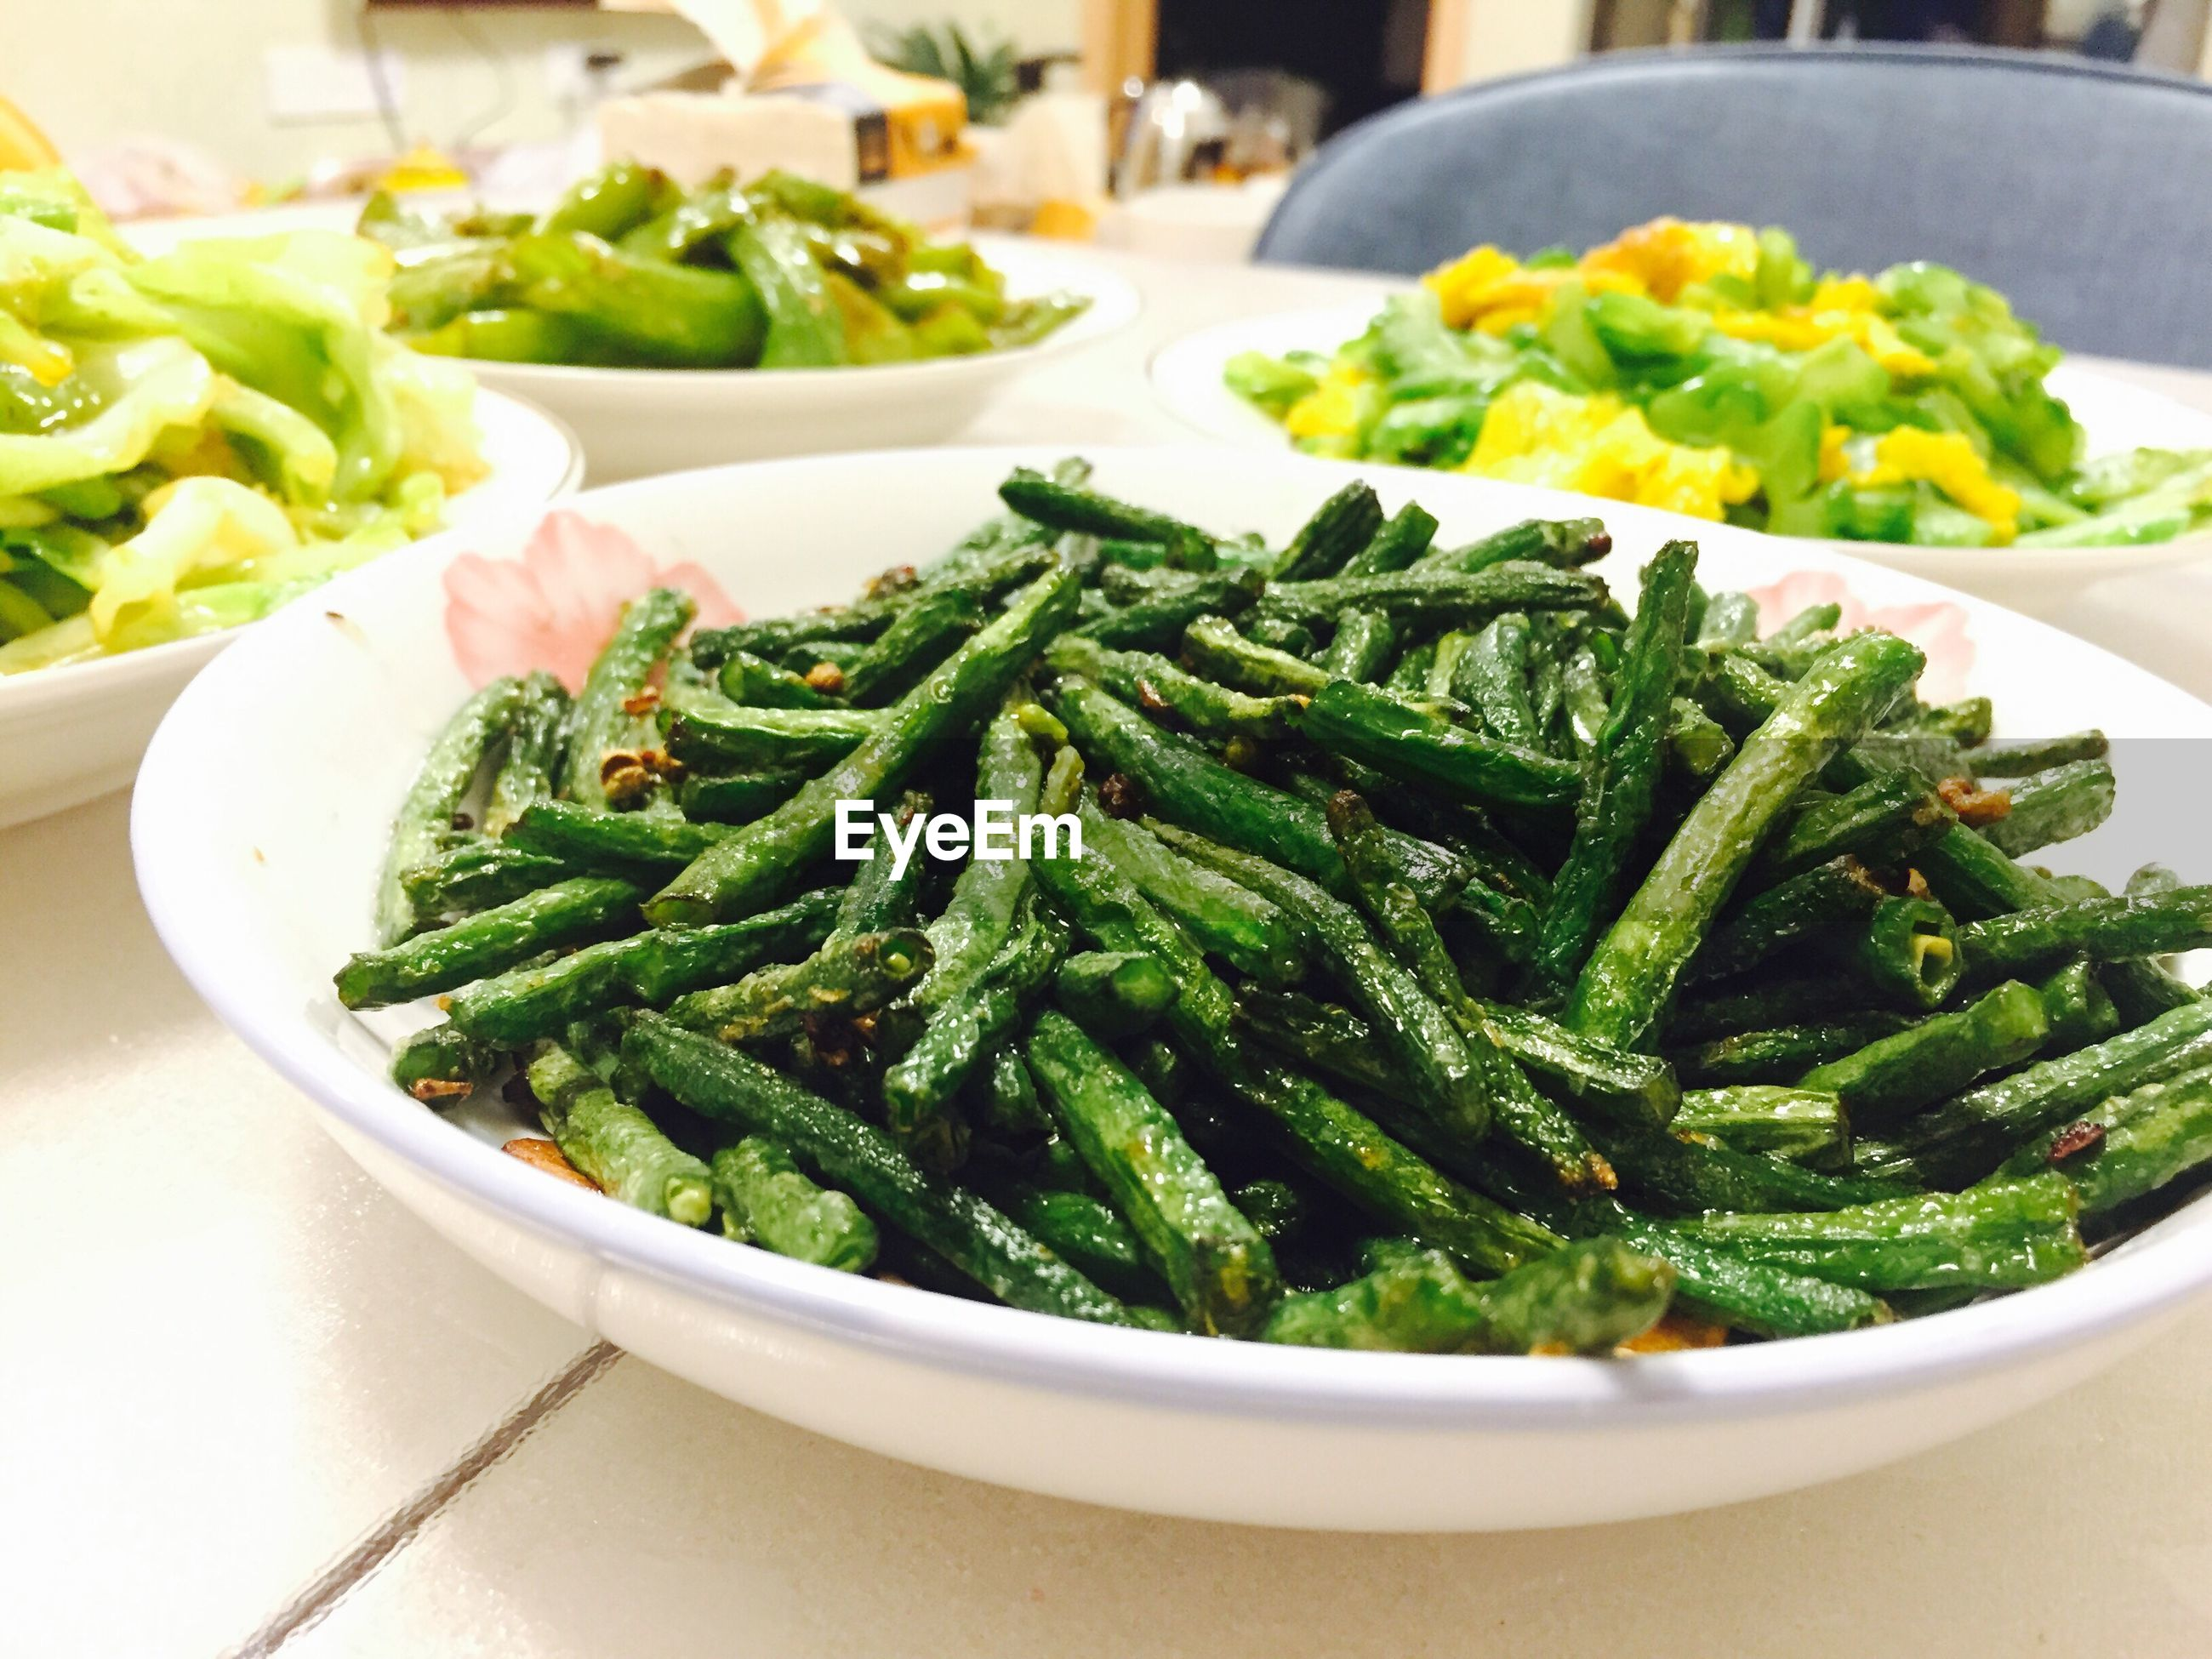 food, food and drink, healthy eating, freshness, vegetable, wellbeing, green color, still life, plate, indoors, ready-to-eat, table, close-up, serving size, no people, bowl, focus on foreground, high angle view, meal, bean, crockery, vegetarian food, serving dish